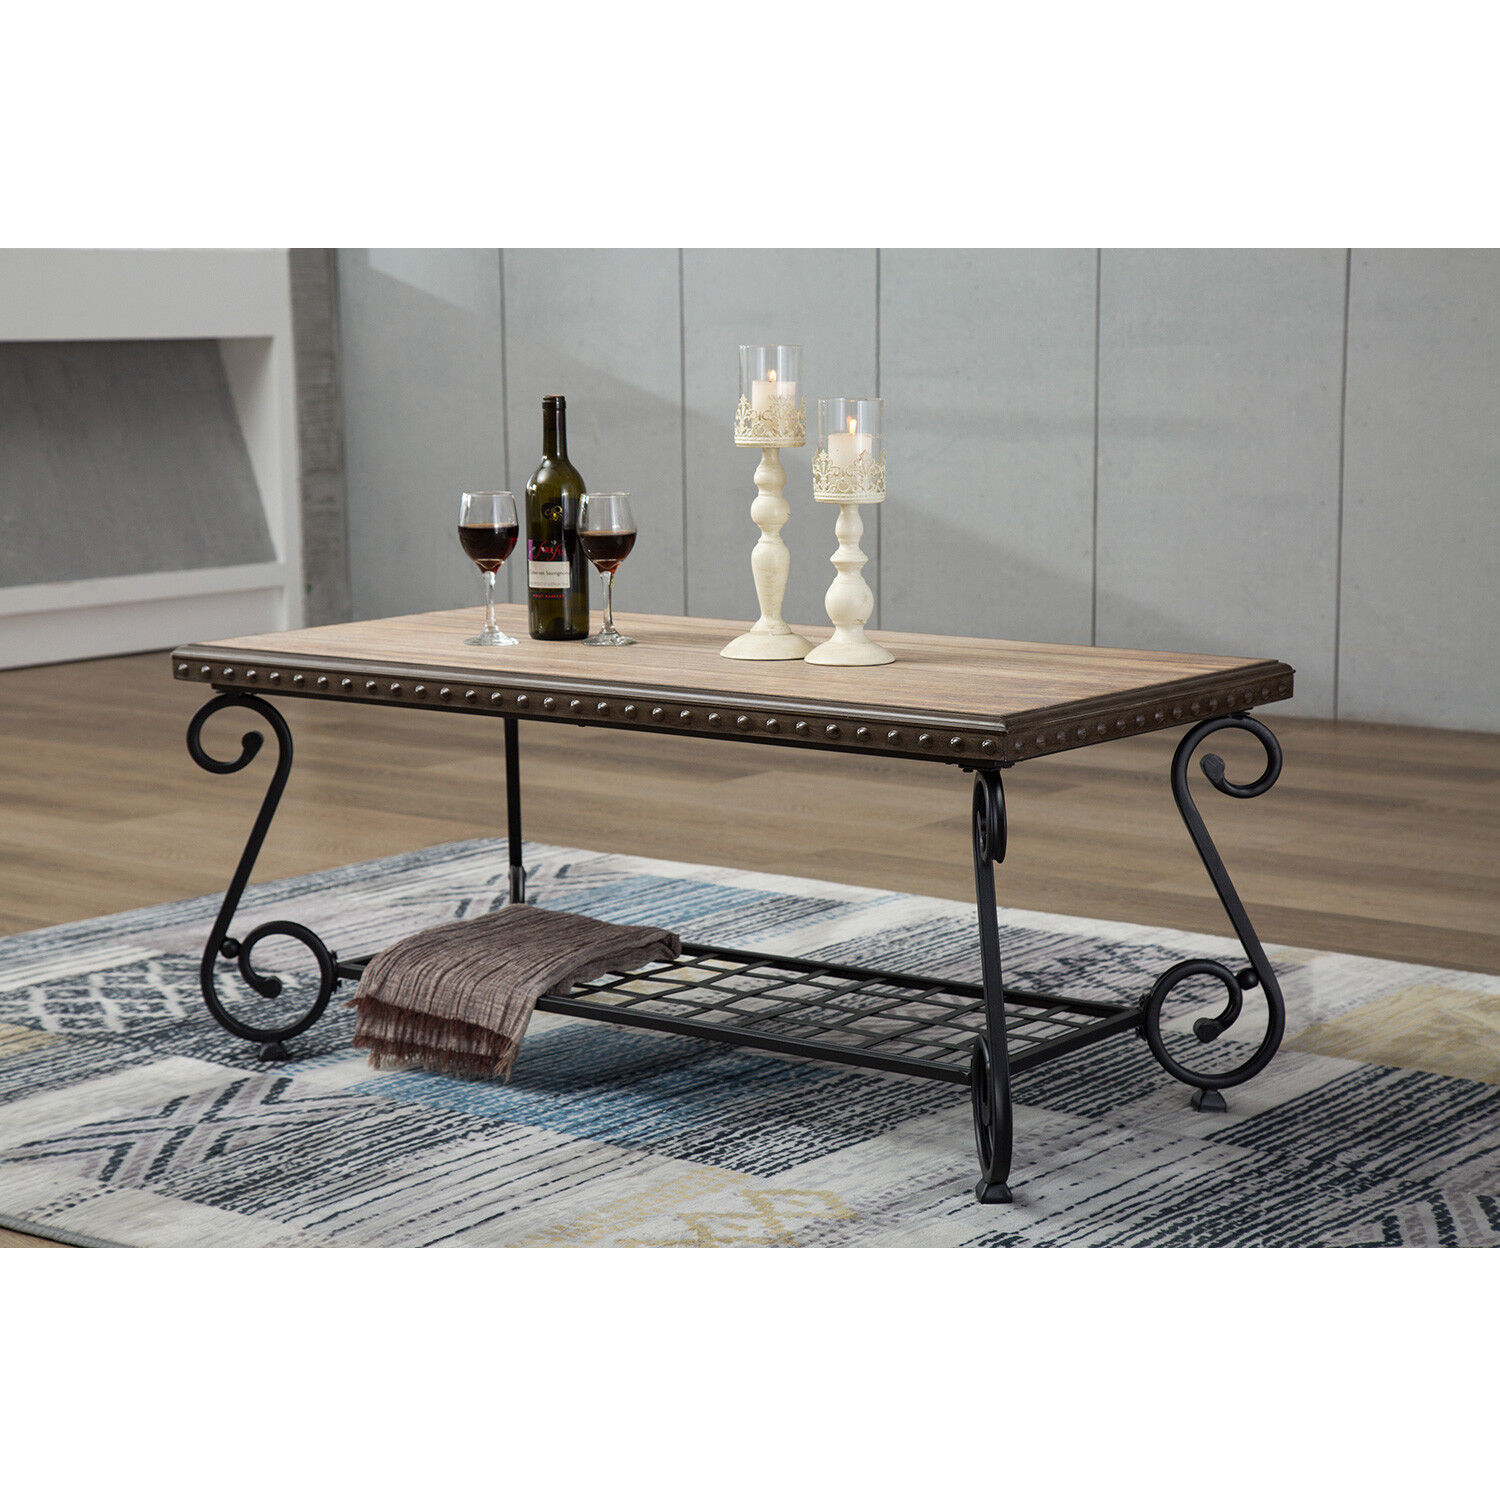 Enjoyable Details About Design Industrial Style Coffee Sofa Table 2 Shelf Tea Side Table Metal Frame Pabps2019 Chair Design Images Pabps2019Com